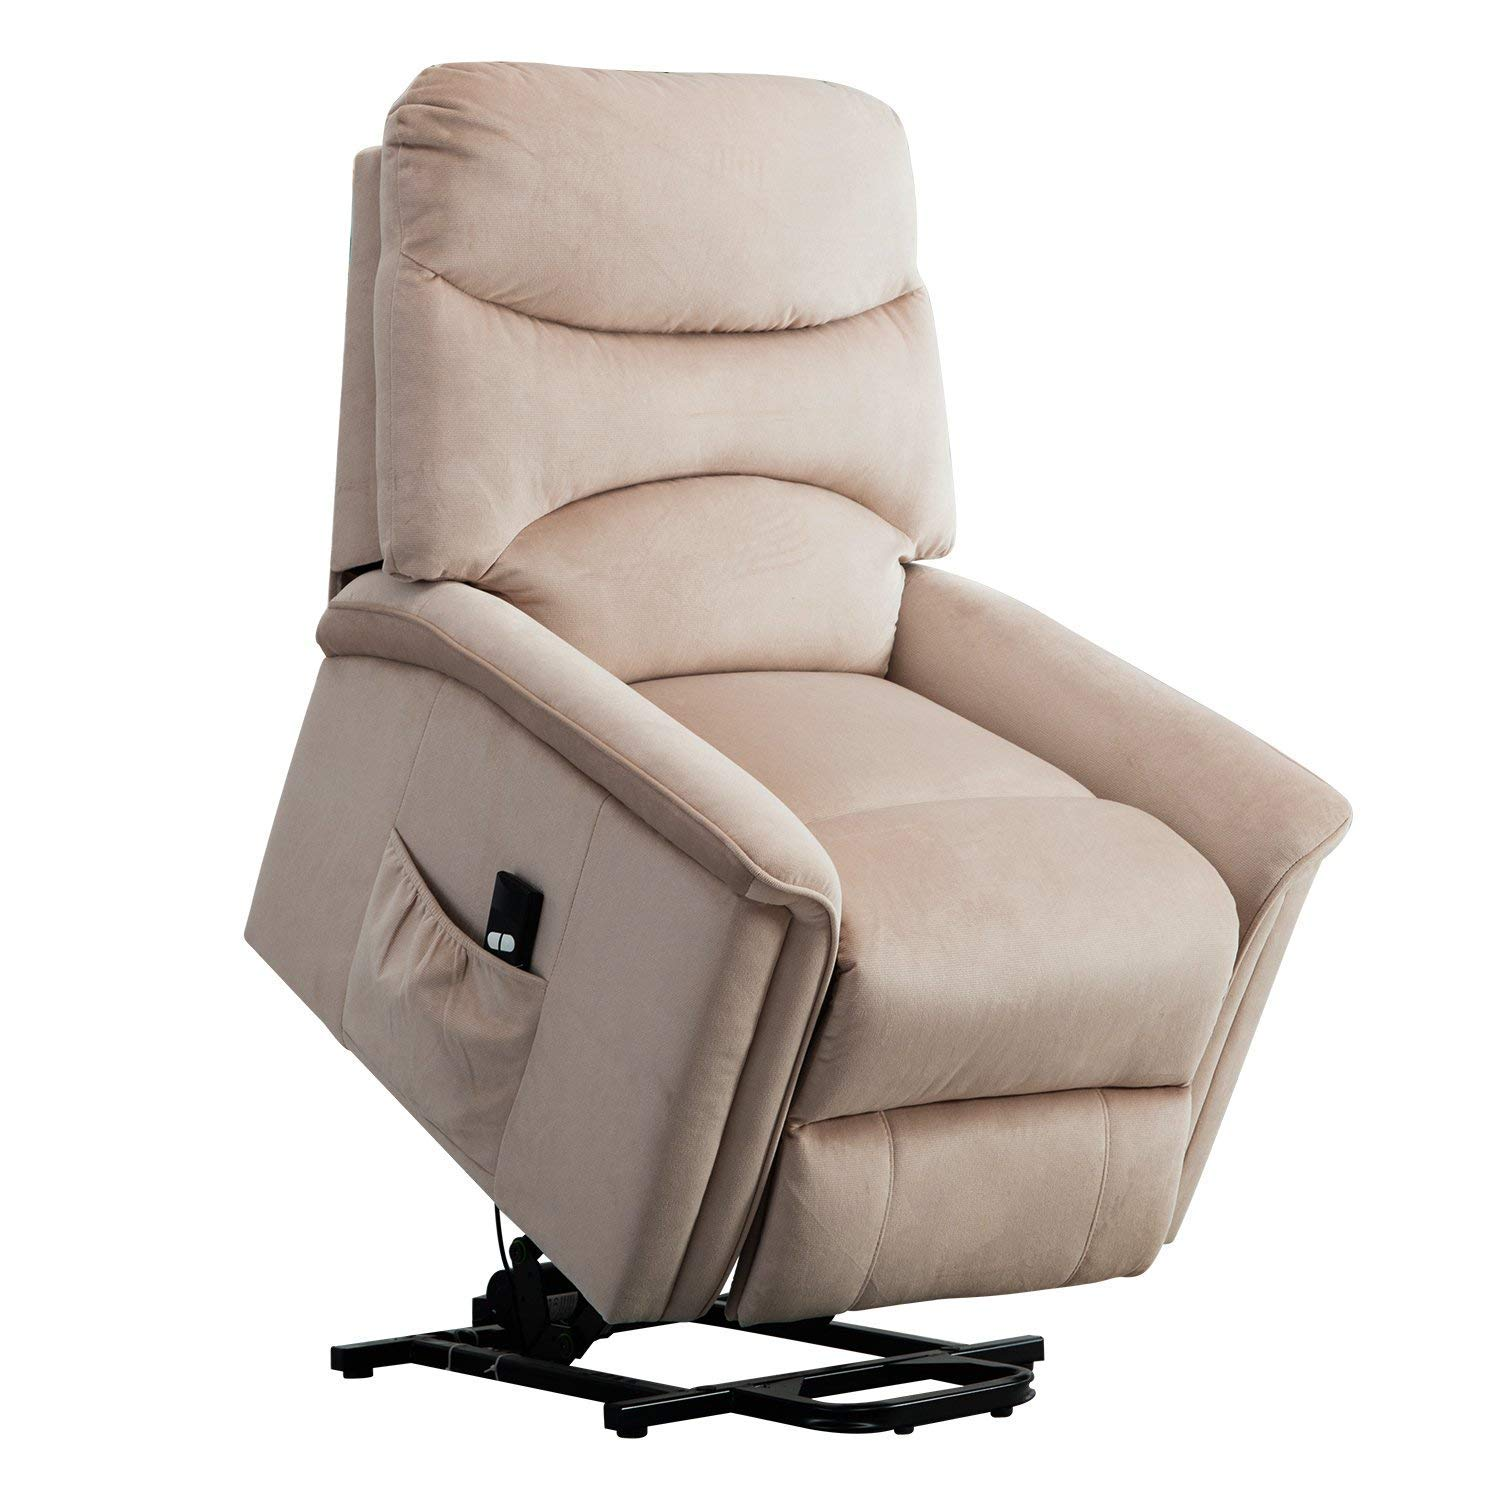 BONZY Lift Recliner Chair Power Lift Chair with Gentle Motor Velvet Cover Buff